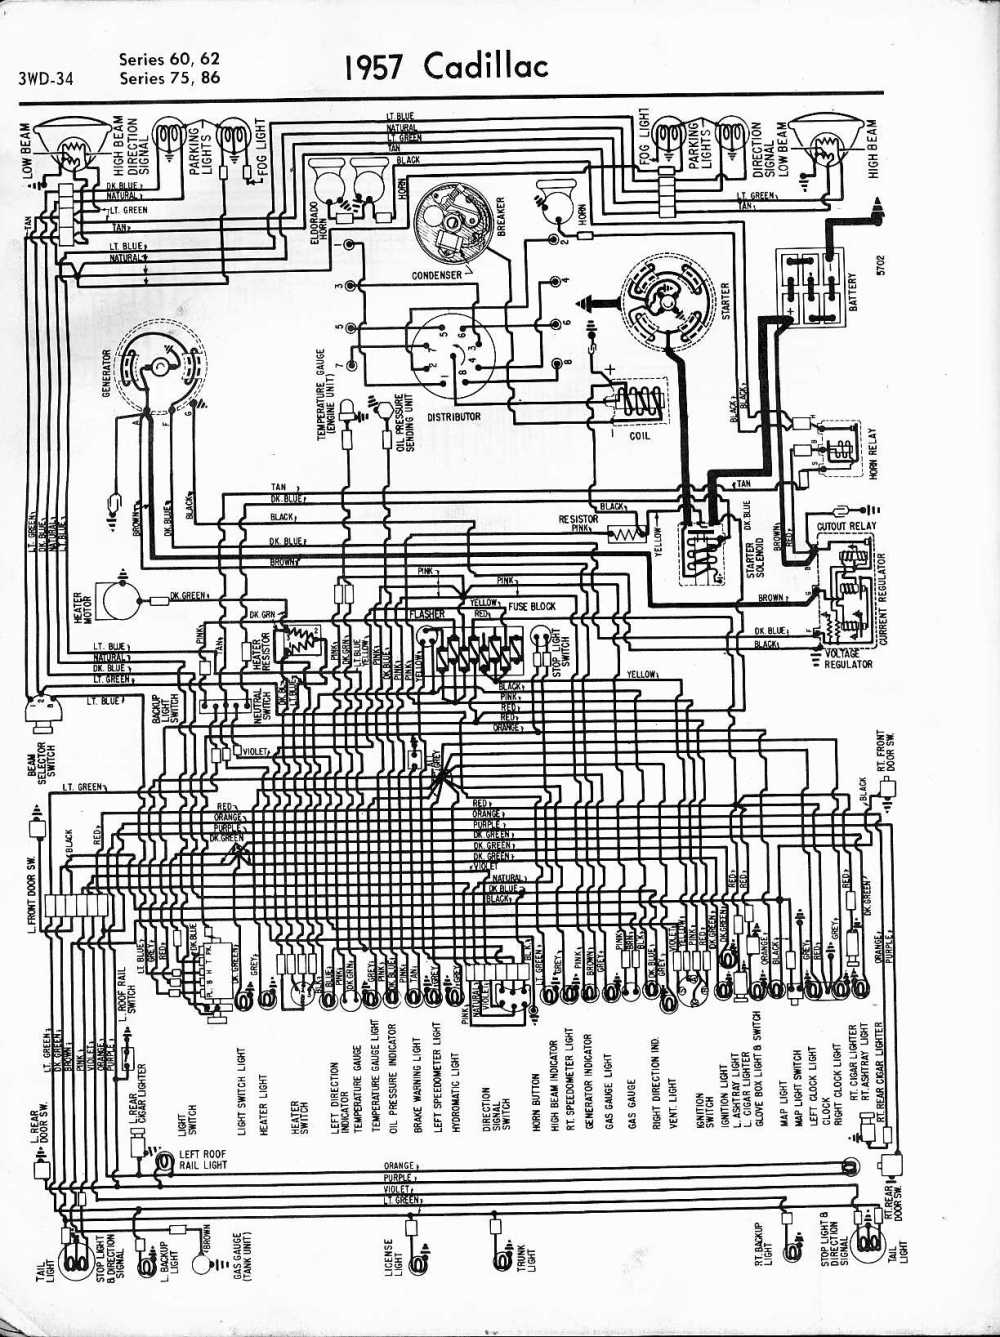 medium resolution of cadillac wiring diagram nice place to get wiring diagram u2022 rh usxcleague com cadillac deville stereo wiring diagram 1993 cadillac deville wiring diagram